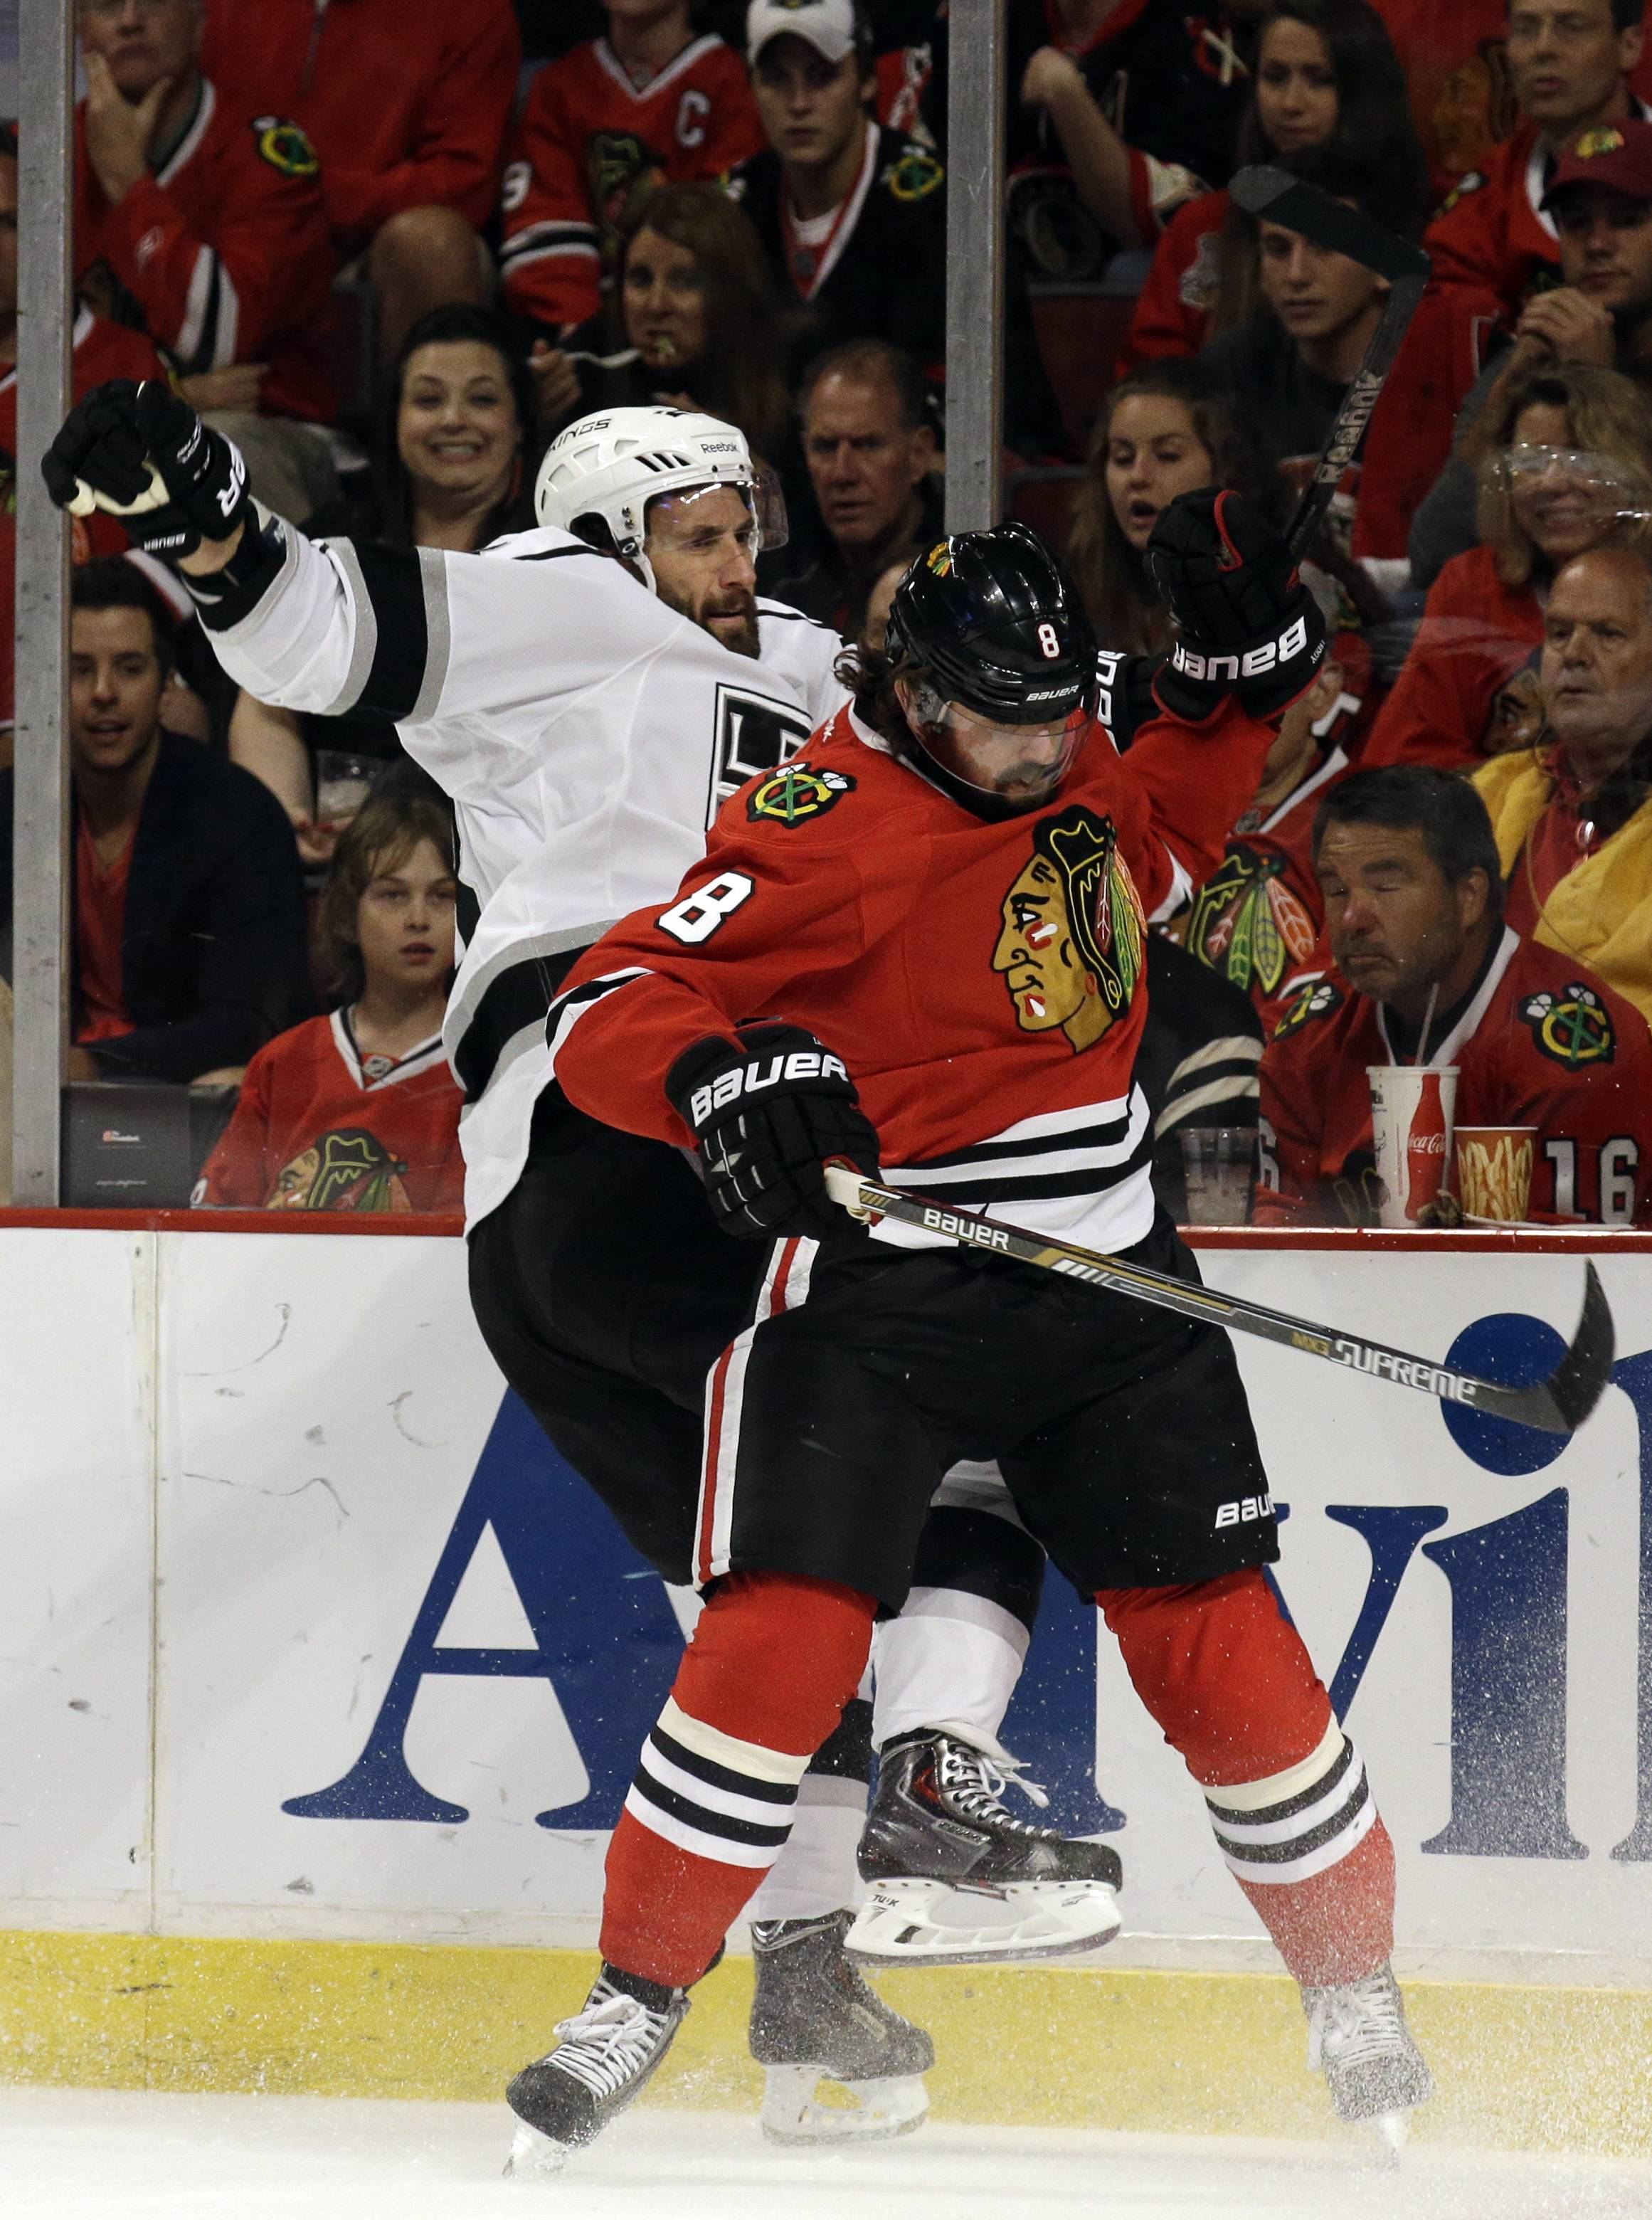 Blackhawks defenseman Nick Leddy remains at a loss for words to describe the final play of the season Sunday, when the puck deflected off his wrist and side into the net as the Kings won 5-4 in overtime.